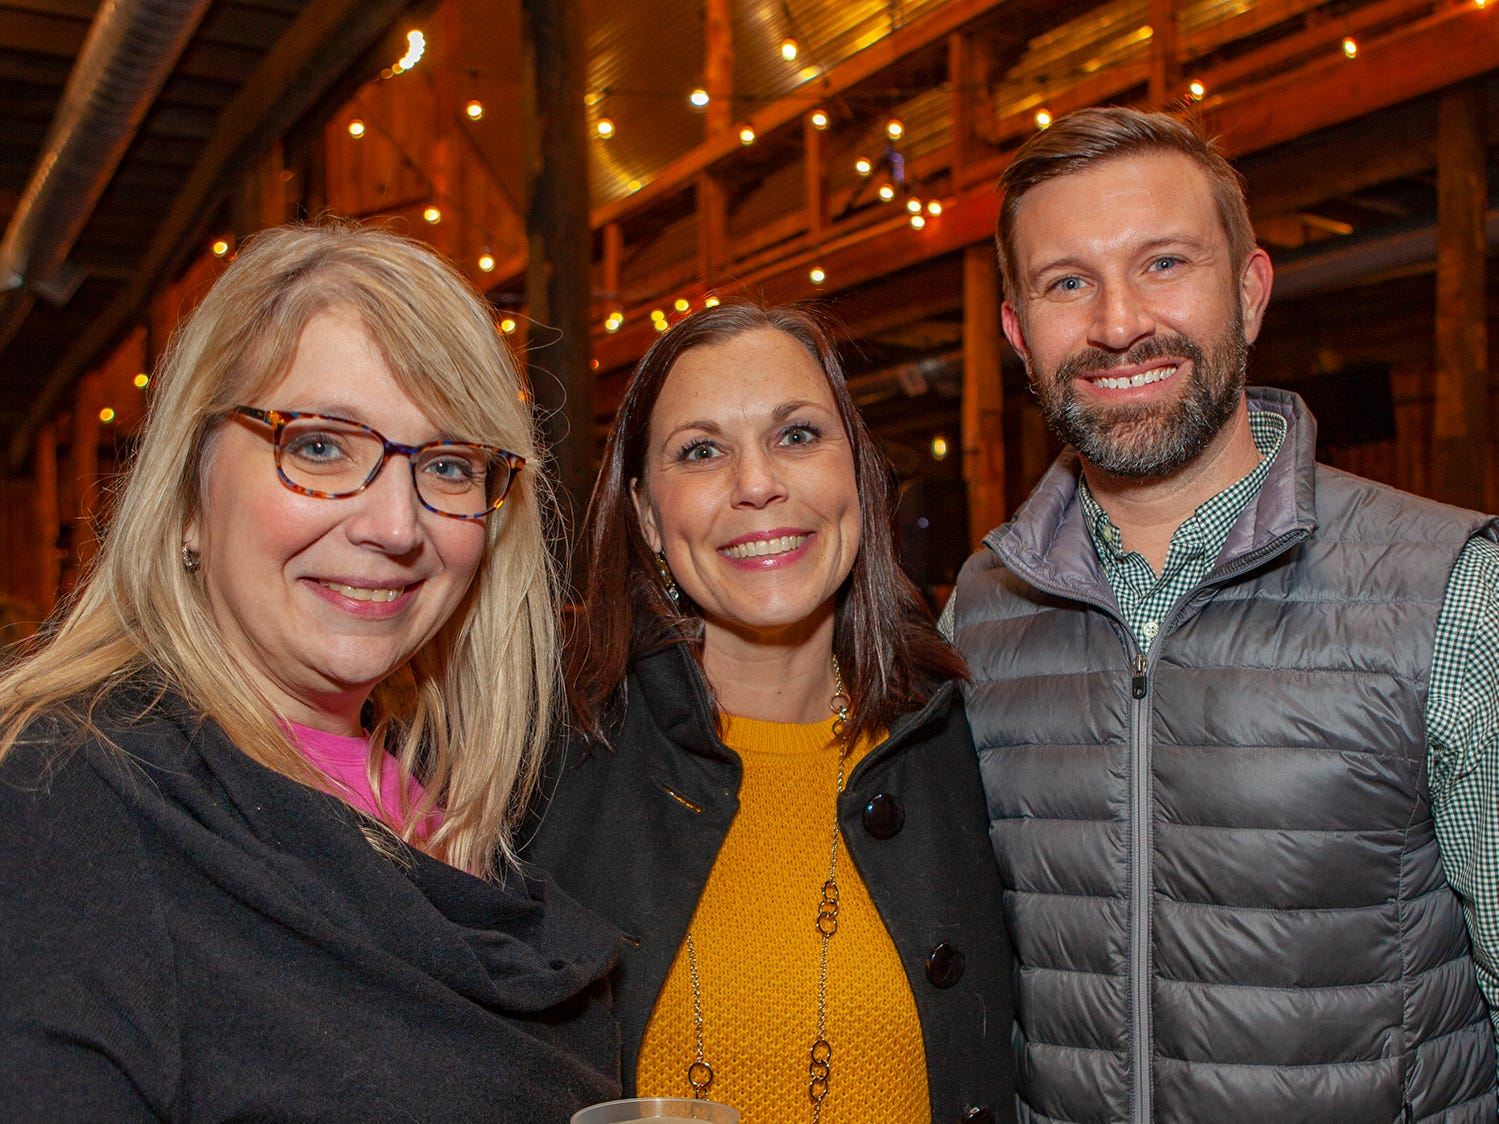 Leslie Baker, Dana Womack and Ryan Maloney at the second night of Bluebird in the Boro, held March 4-6, 2019. A benefit for Alive Hospice, the event was held at The Grove at Williamson Place in Murfreesboro.